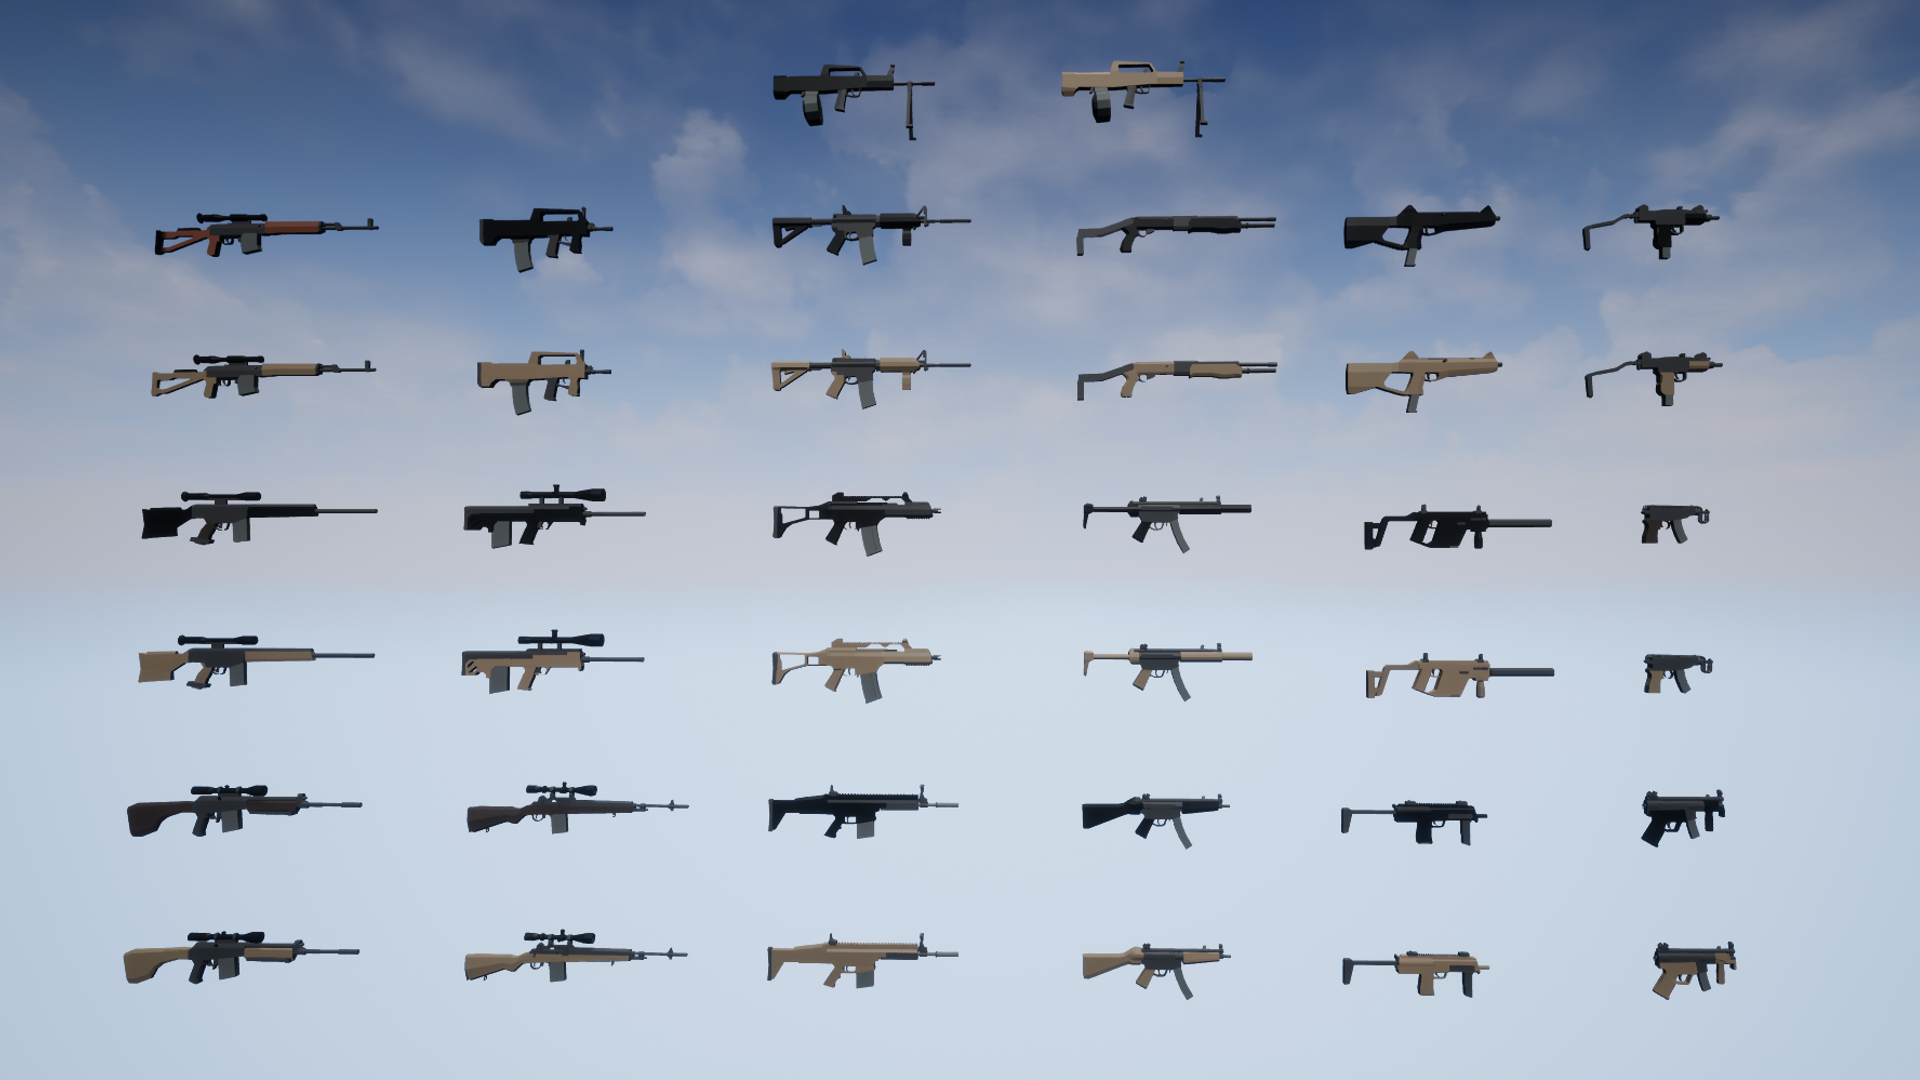 Low Poly Weapons Arsenal by Monster Tooth Studios in Props